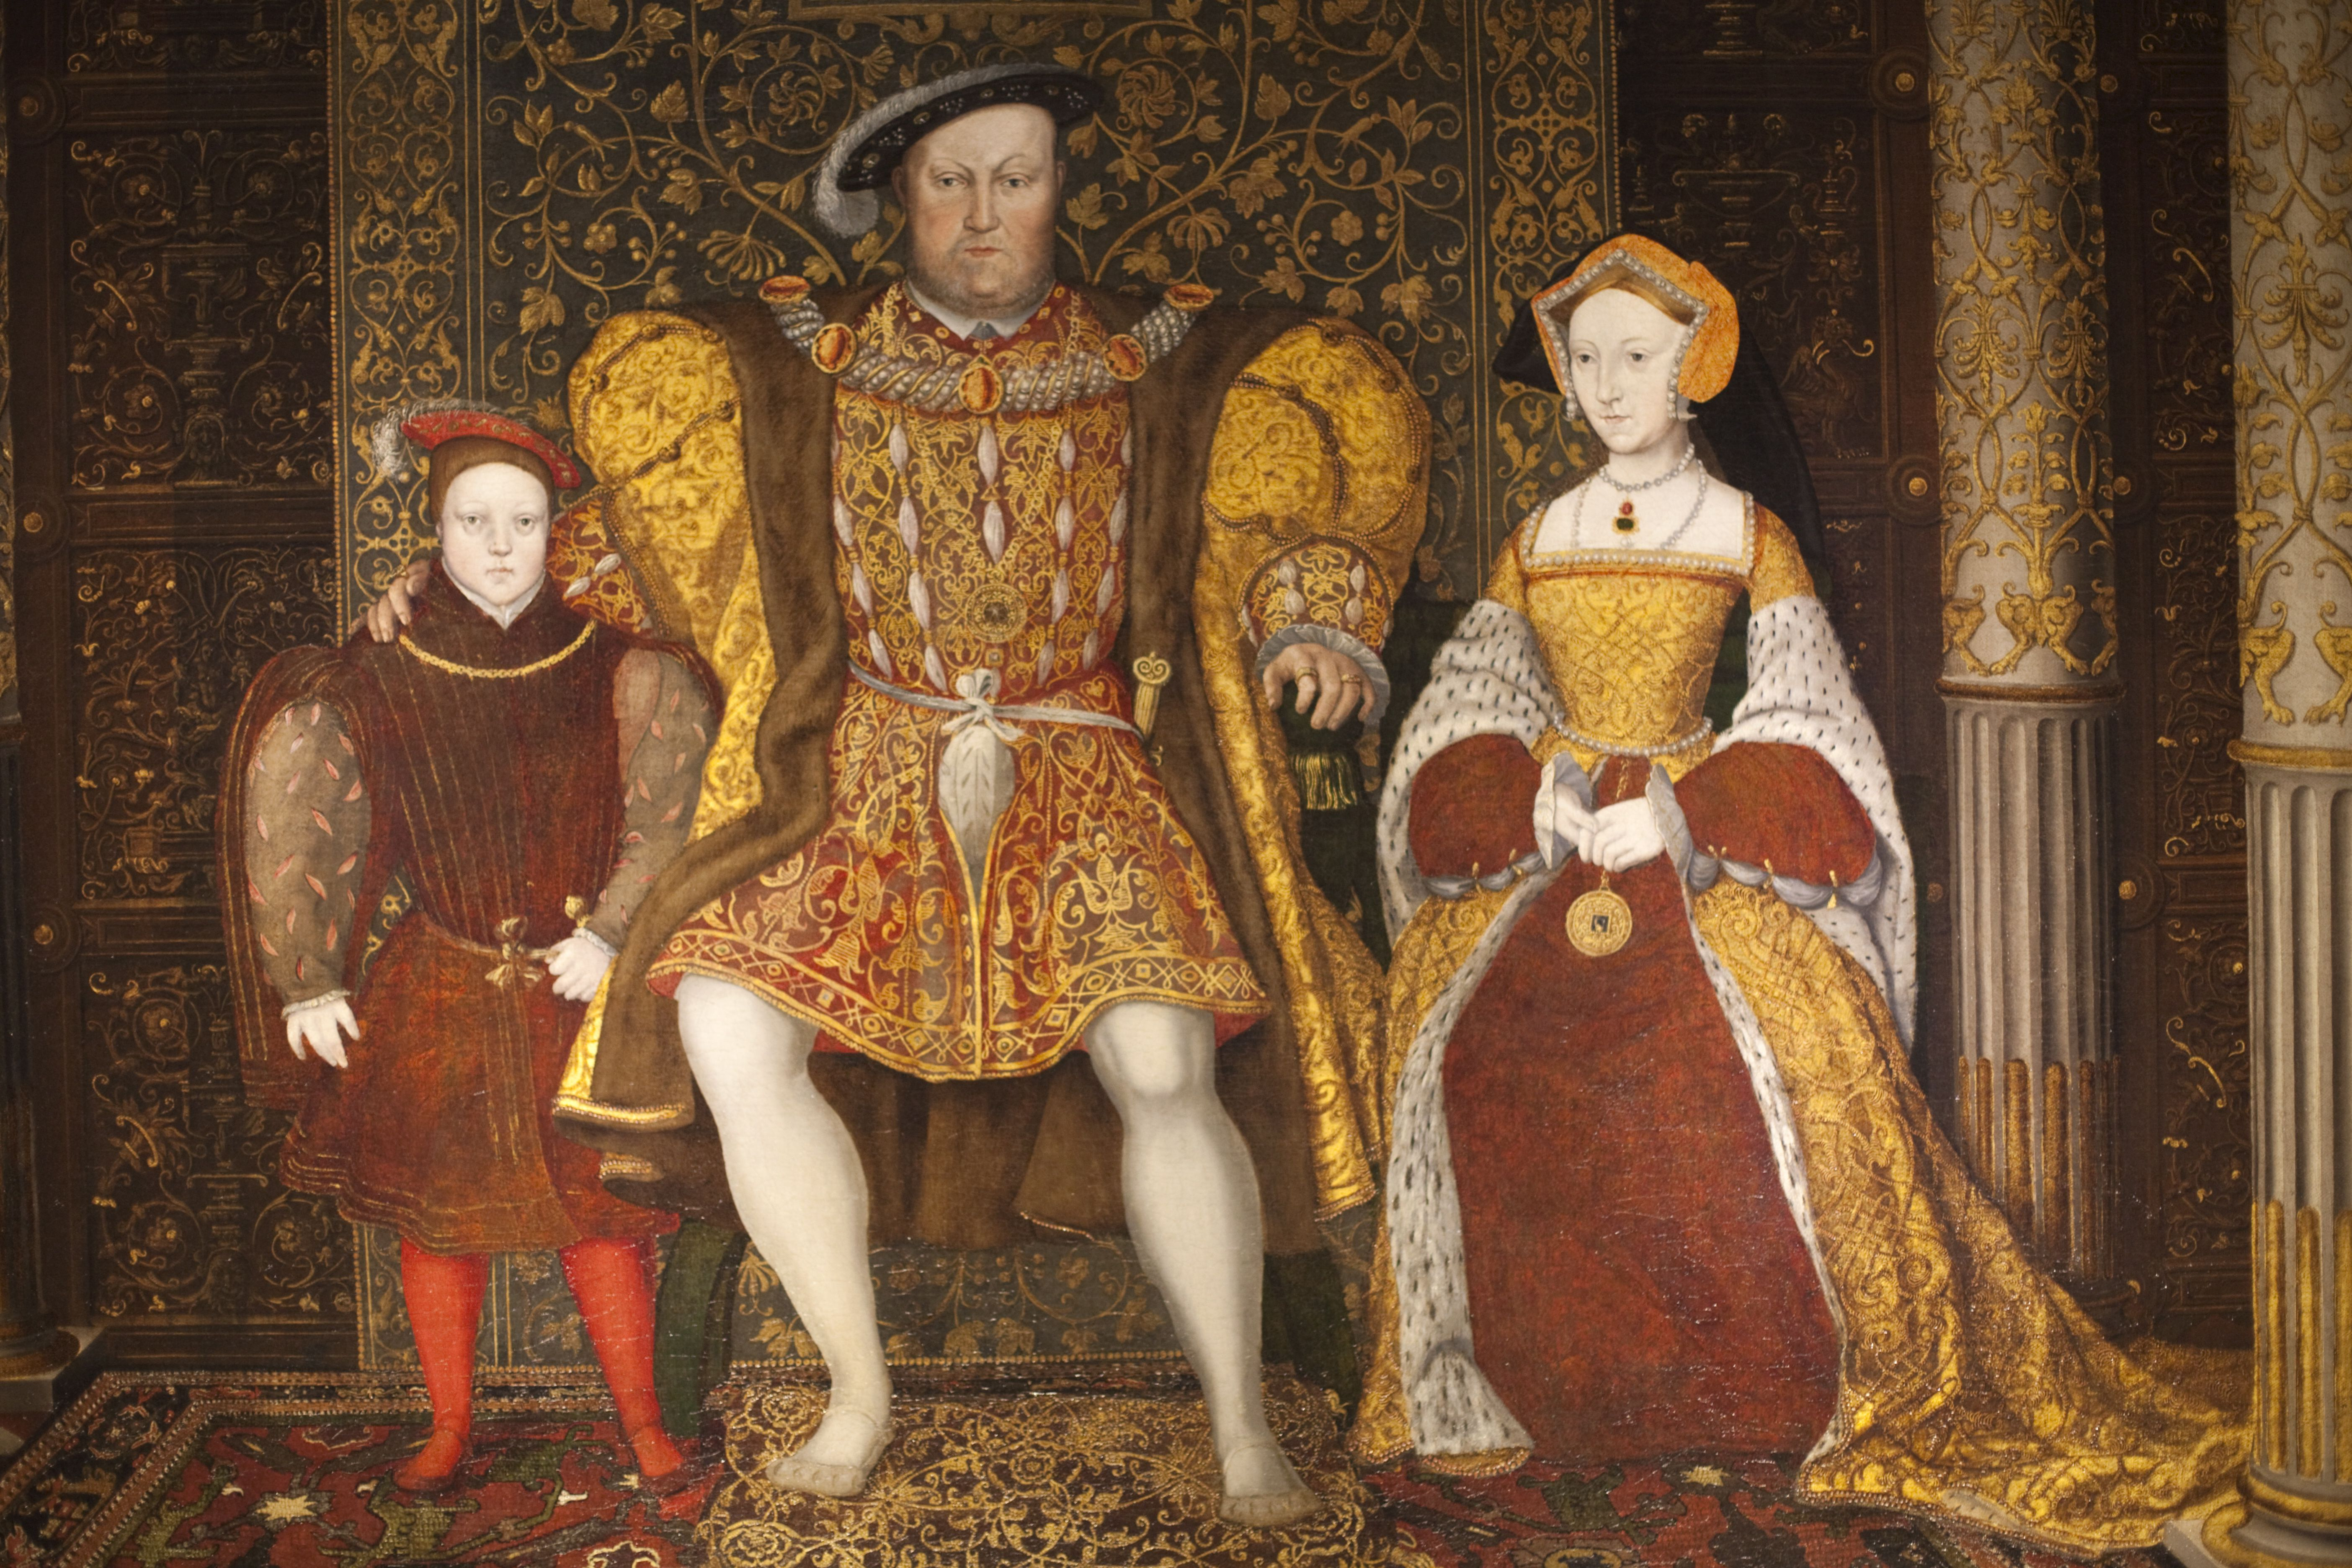 King Henry VIII, Jane Seymour, and Prince Edward painted in the Great Hall at Hampton Court Palace in London